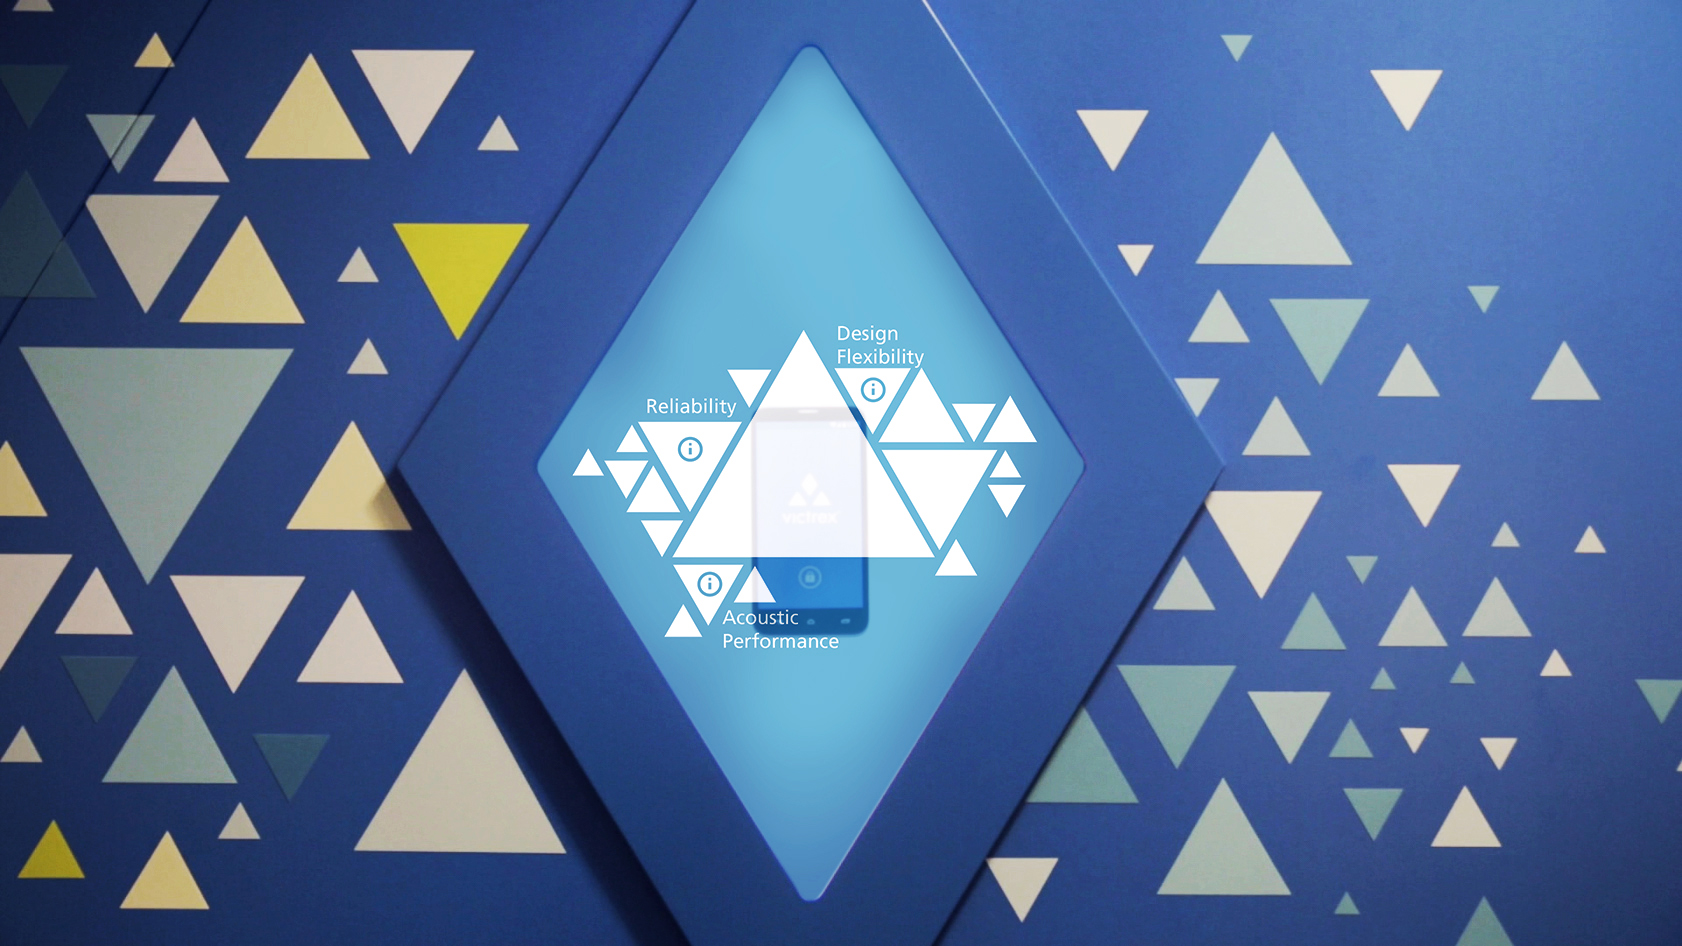 Diamond shaped screen with triangular particle graphics